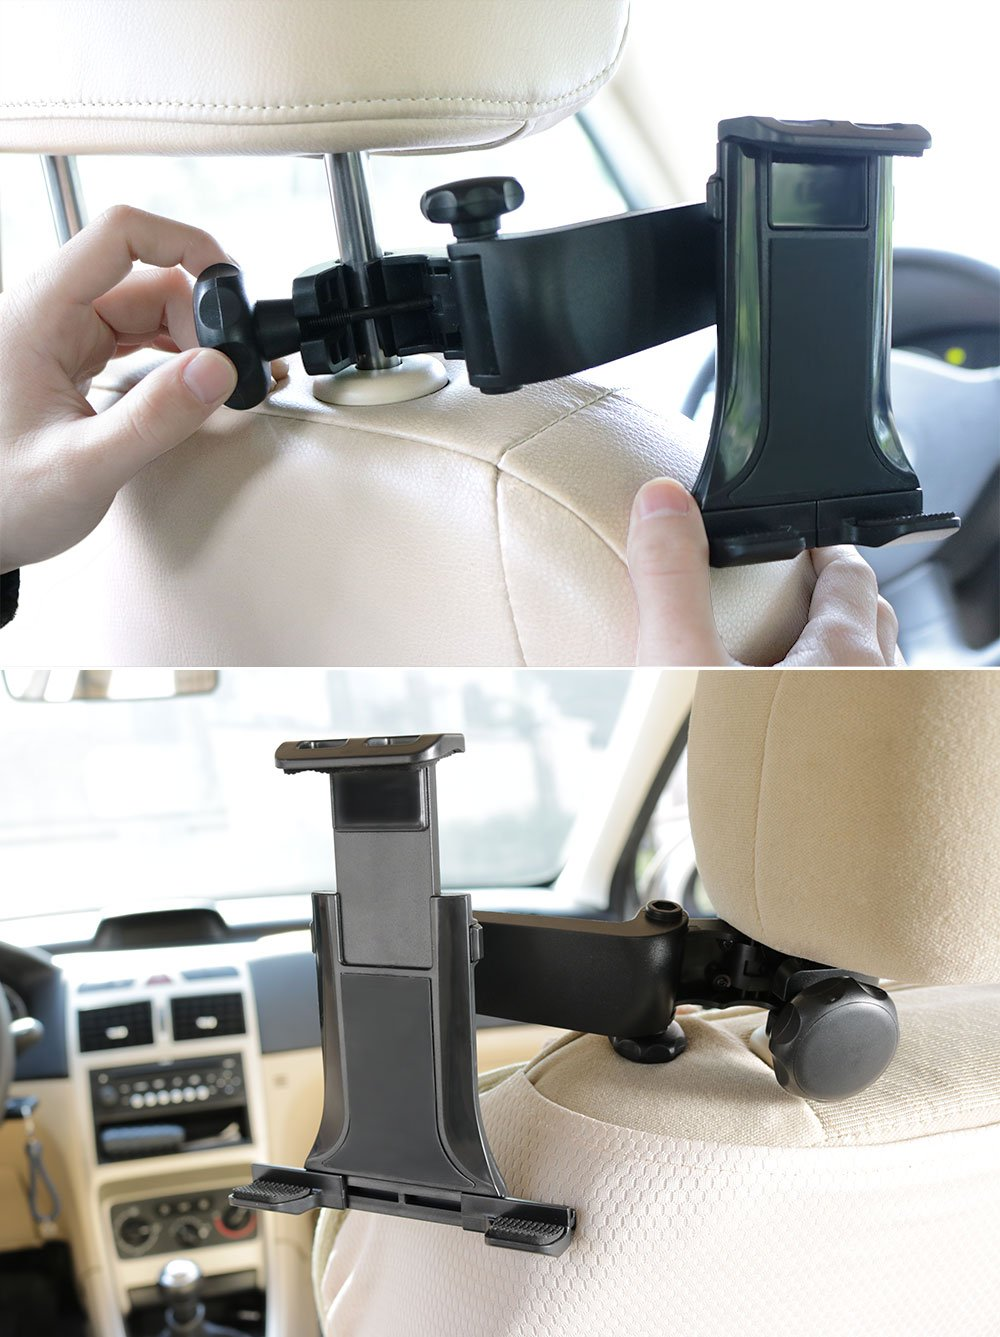 Car Headrest Mount, Adjustable iPad Stand Tablet Mount Holder Compatible with iPad Pro Air/Samsung Galaxy Tab 4/3/Nintendo Switch ,Fire HD 8 10 and all 4.7-11 inch Phone Devices